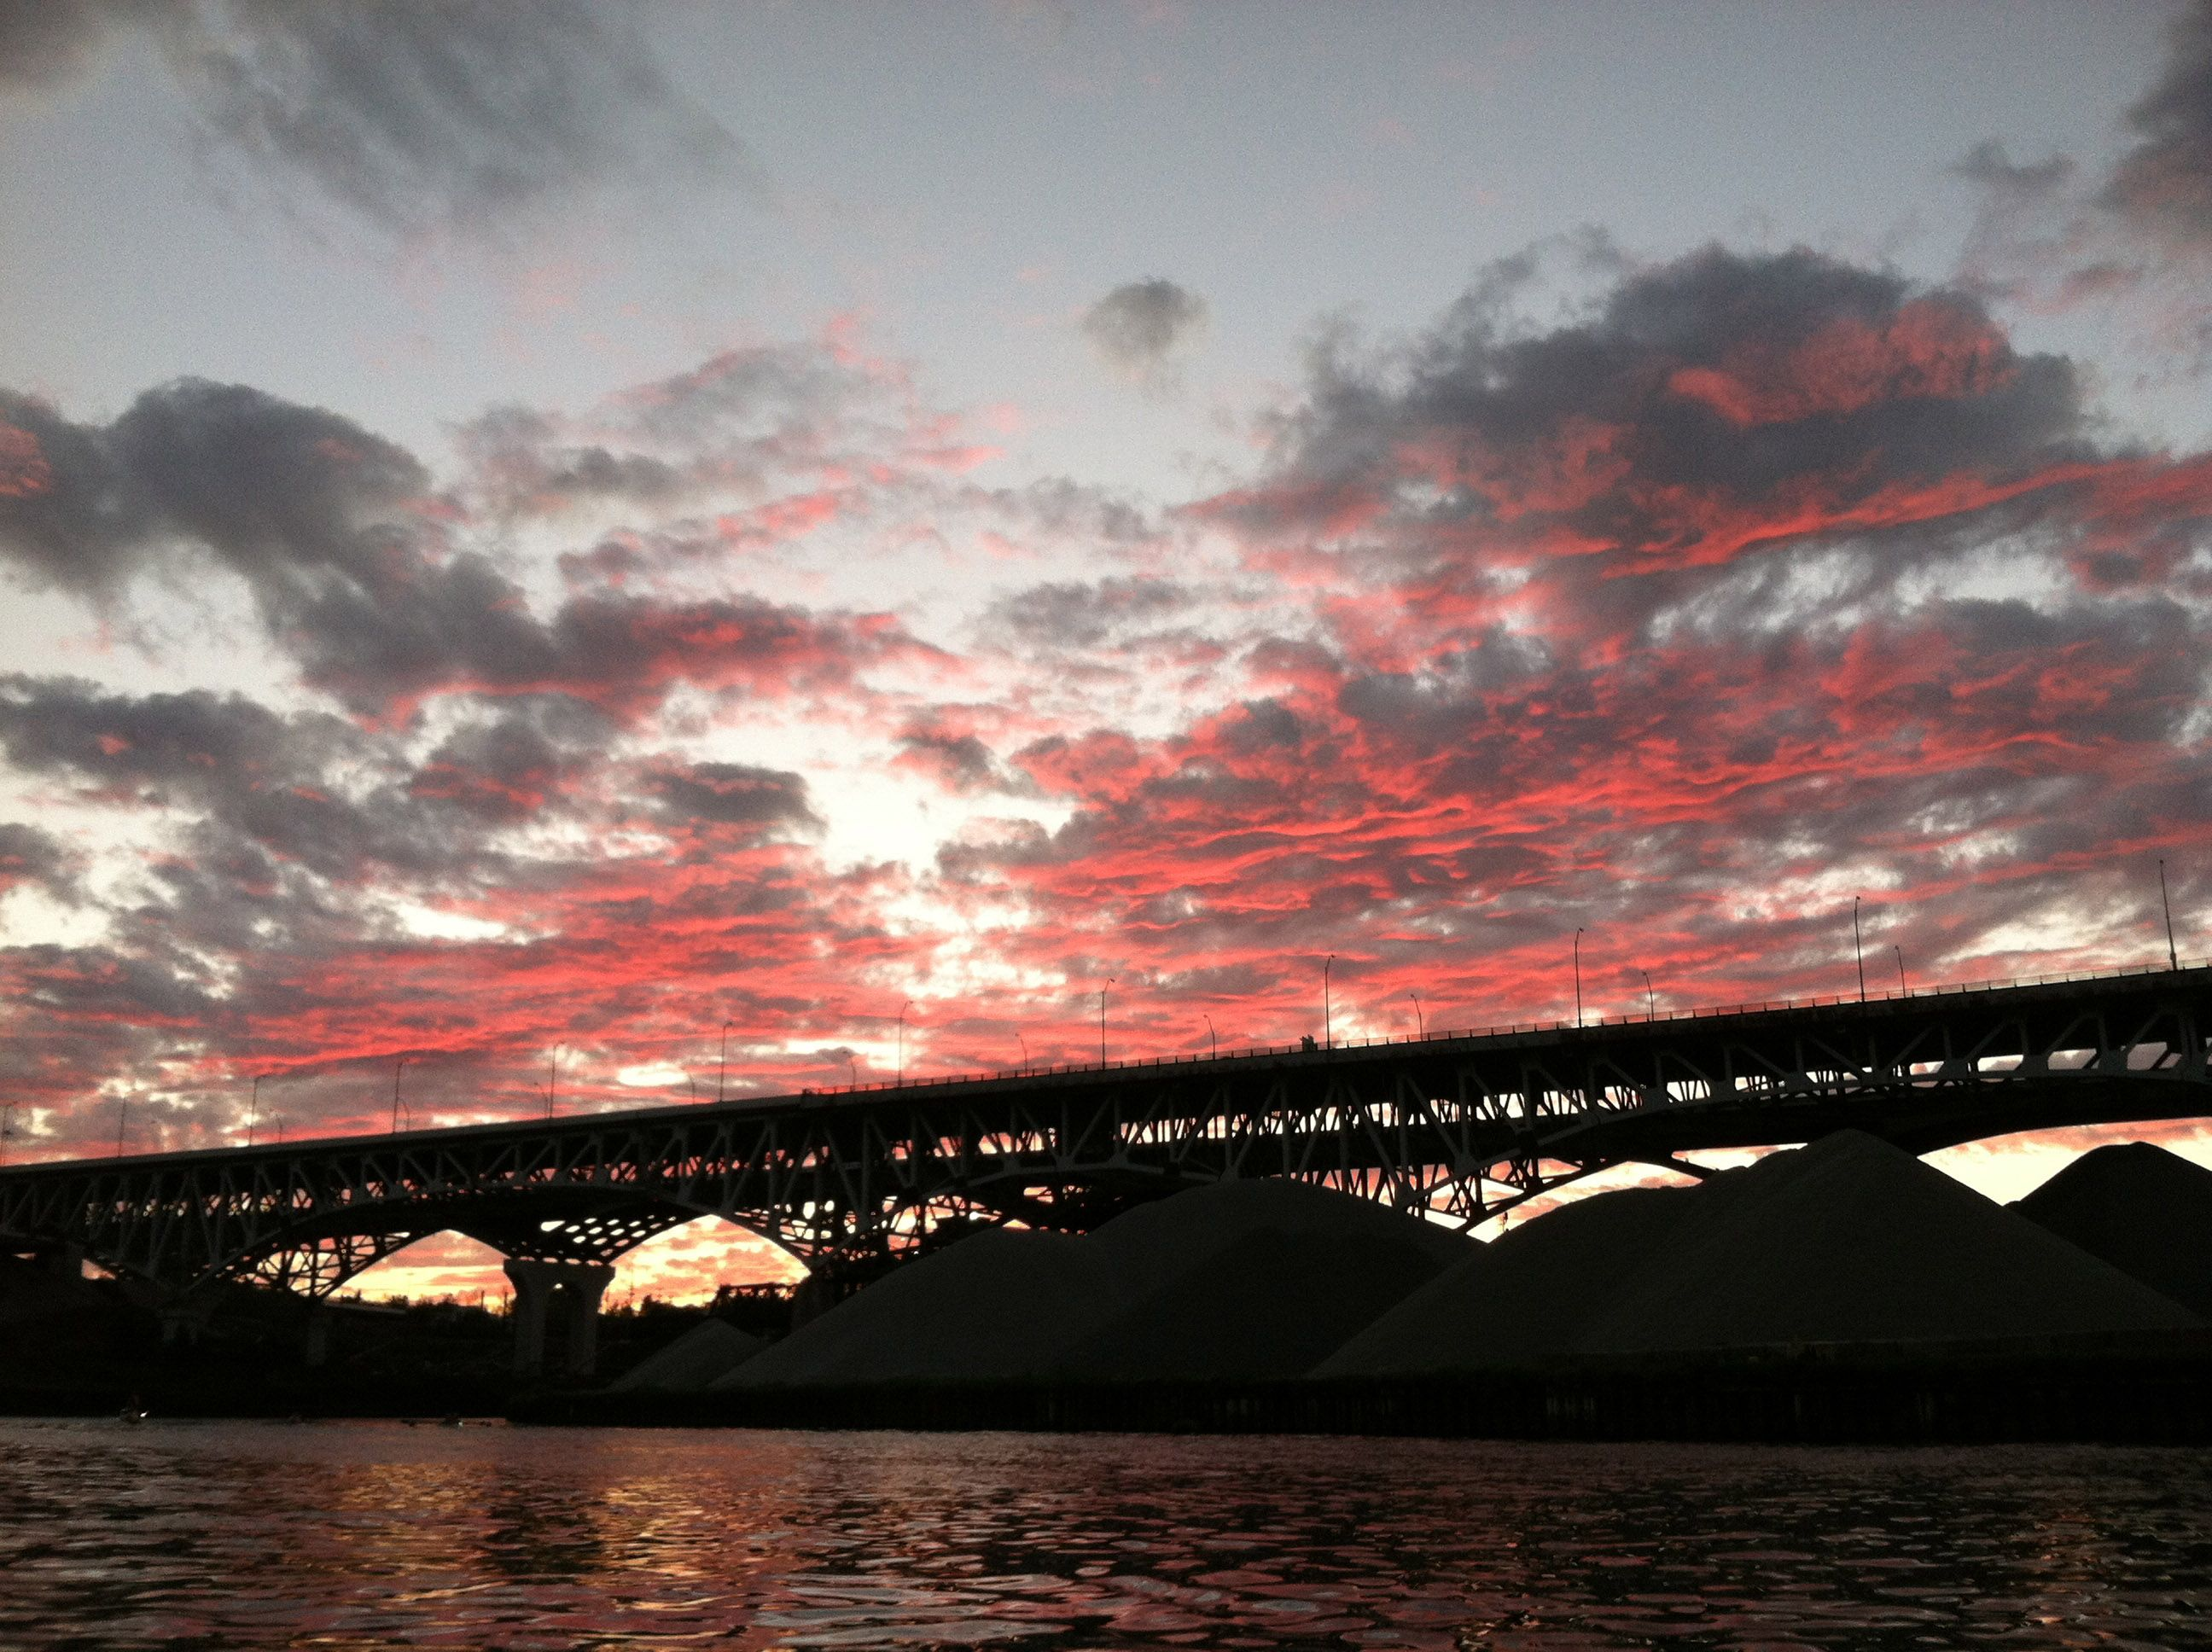 Sunset on the Cuyahoga River, across from Scranton Flats